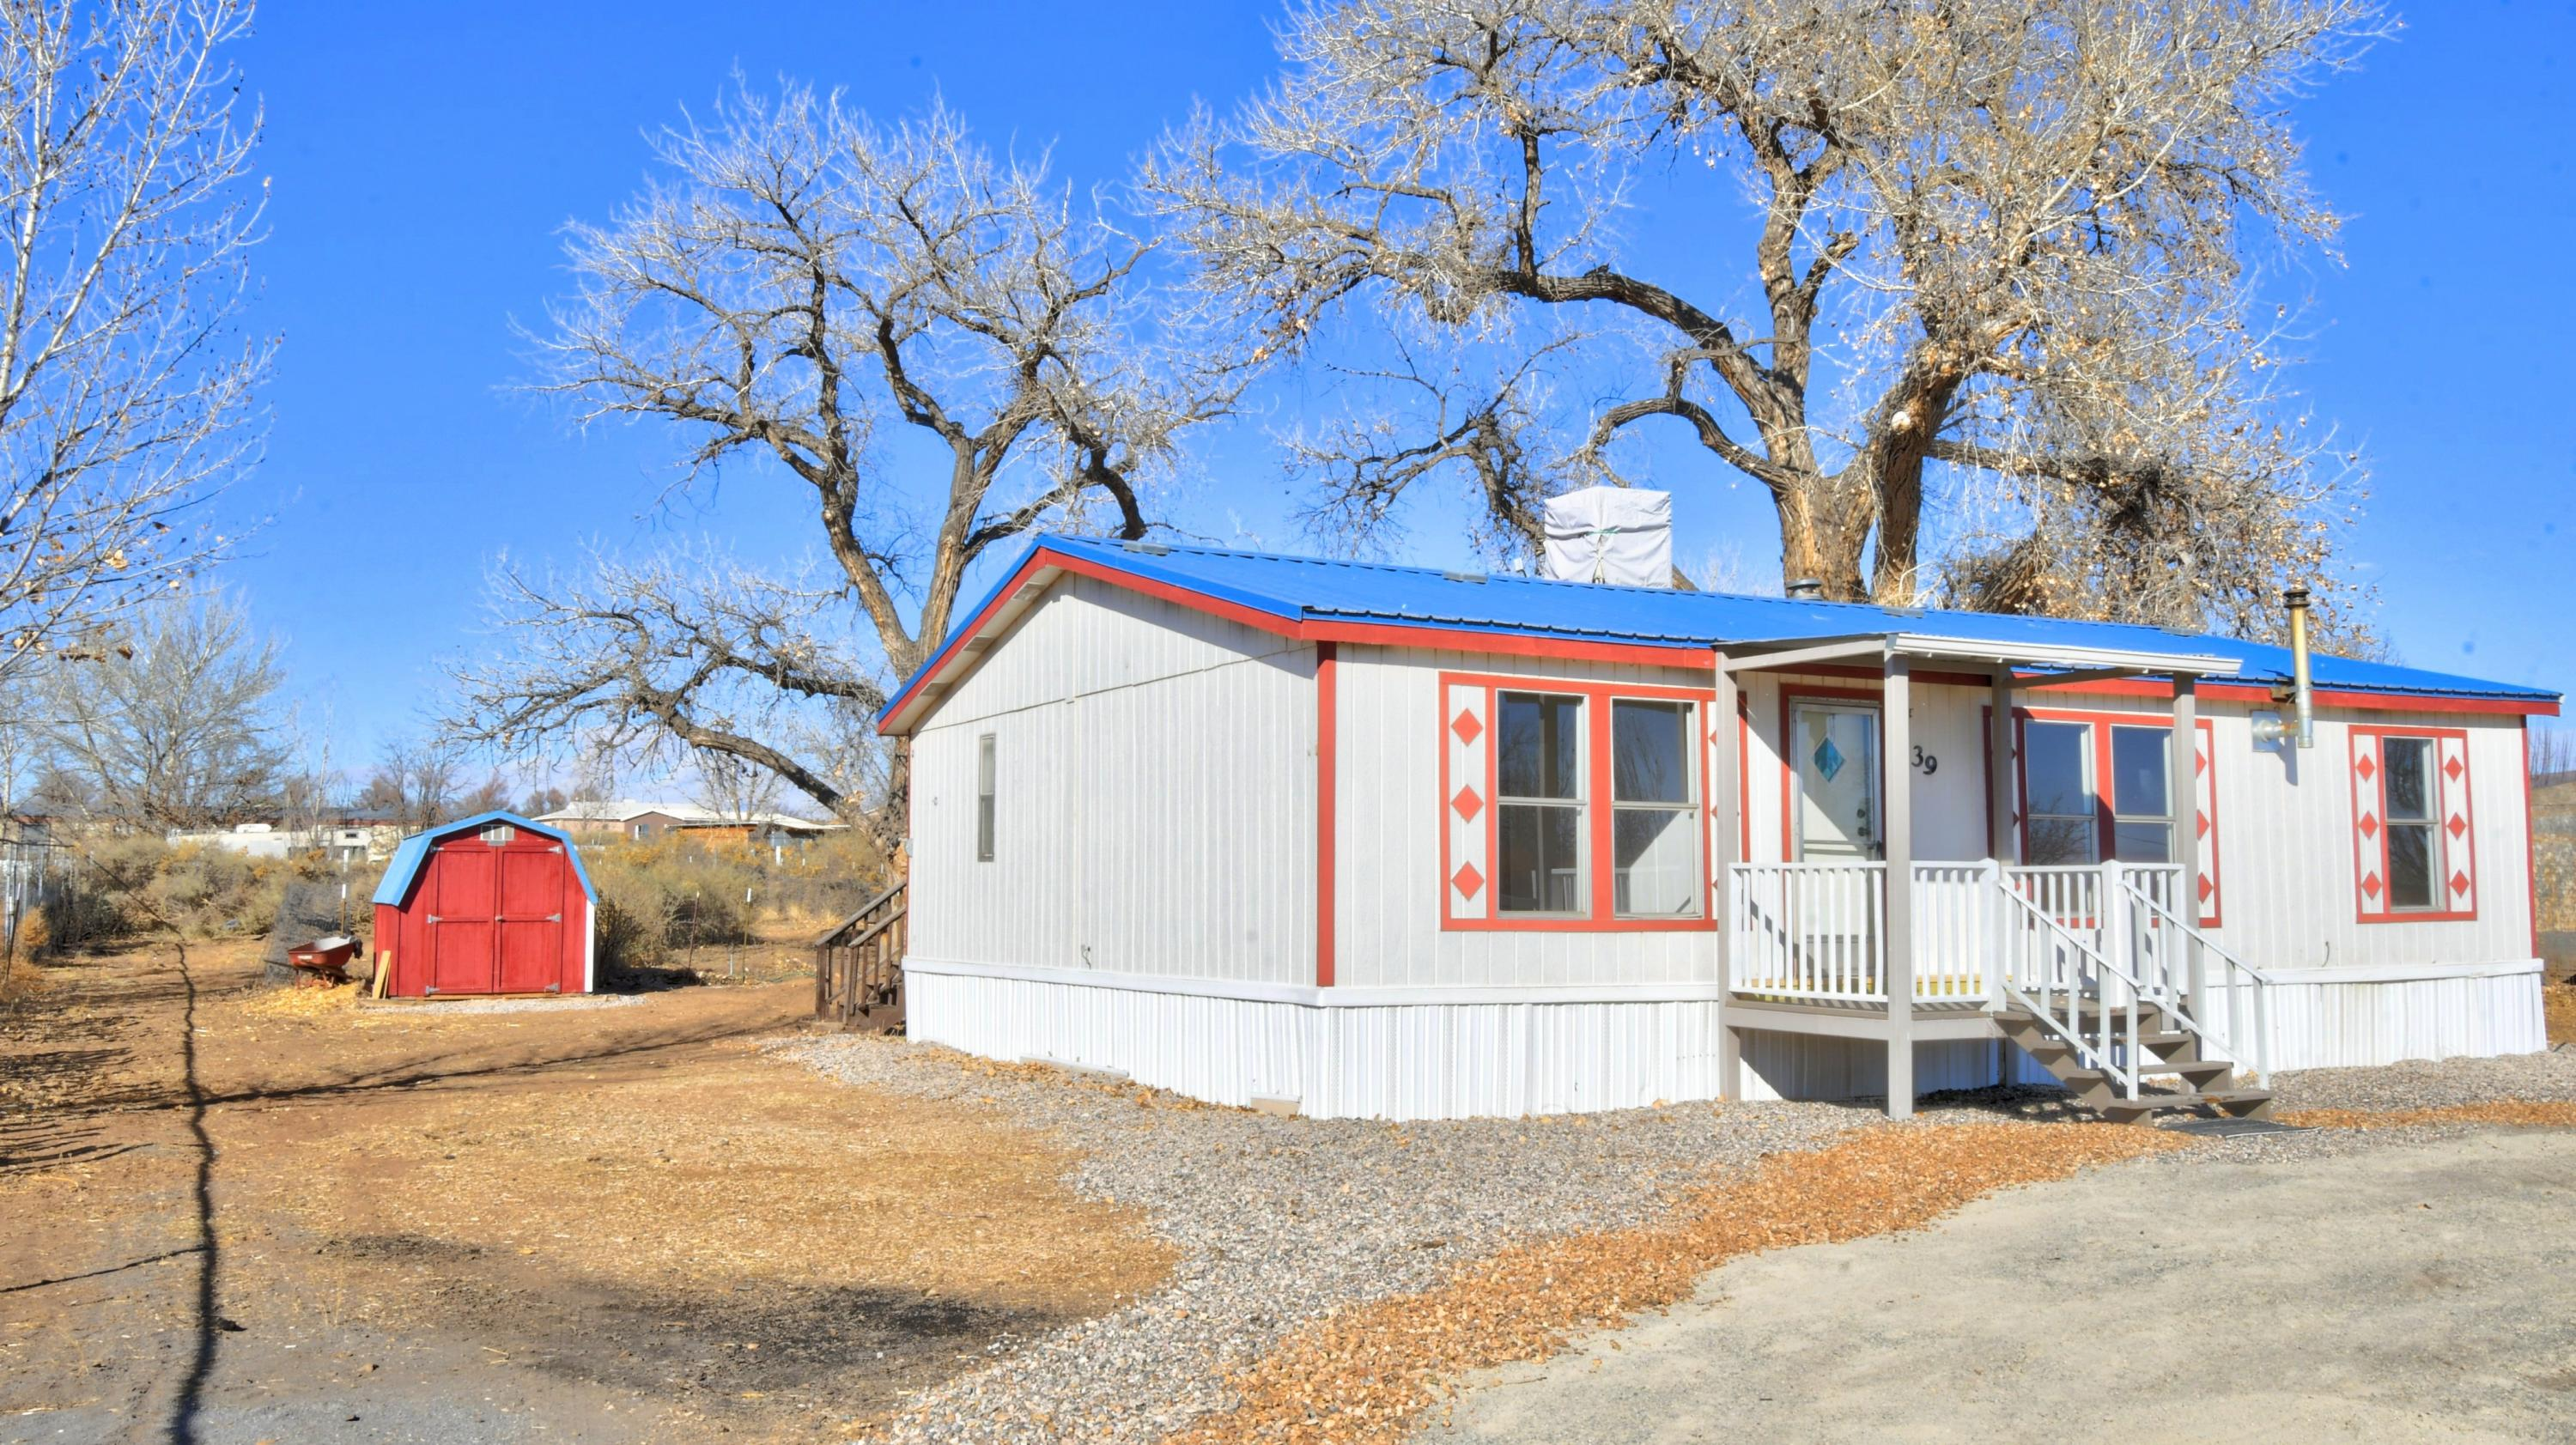 Country living convenient to town! Come see this sweet manufactured home on a fully fenced half acre. Bright, open living room and kitchen, two full baths, two storage sheds, deck, updated appliances, freshly cleaned and painted and ready to call home! Shared well with friendly neighbors!